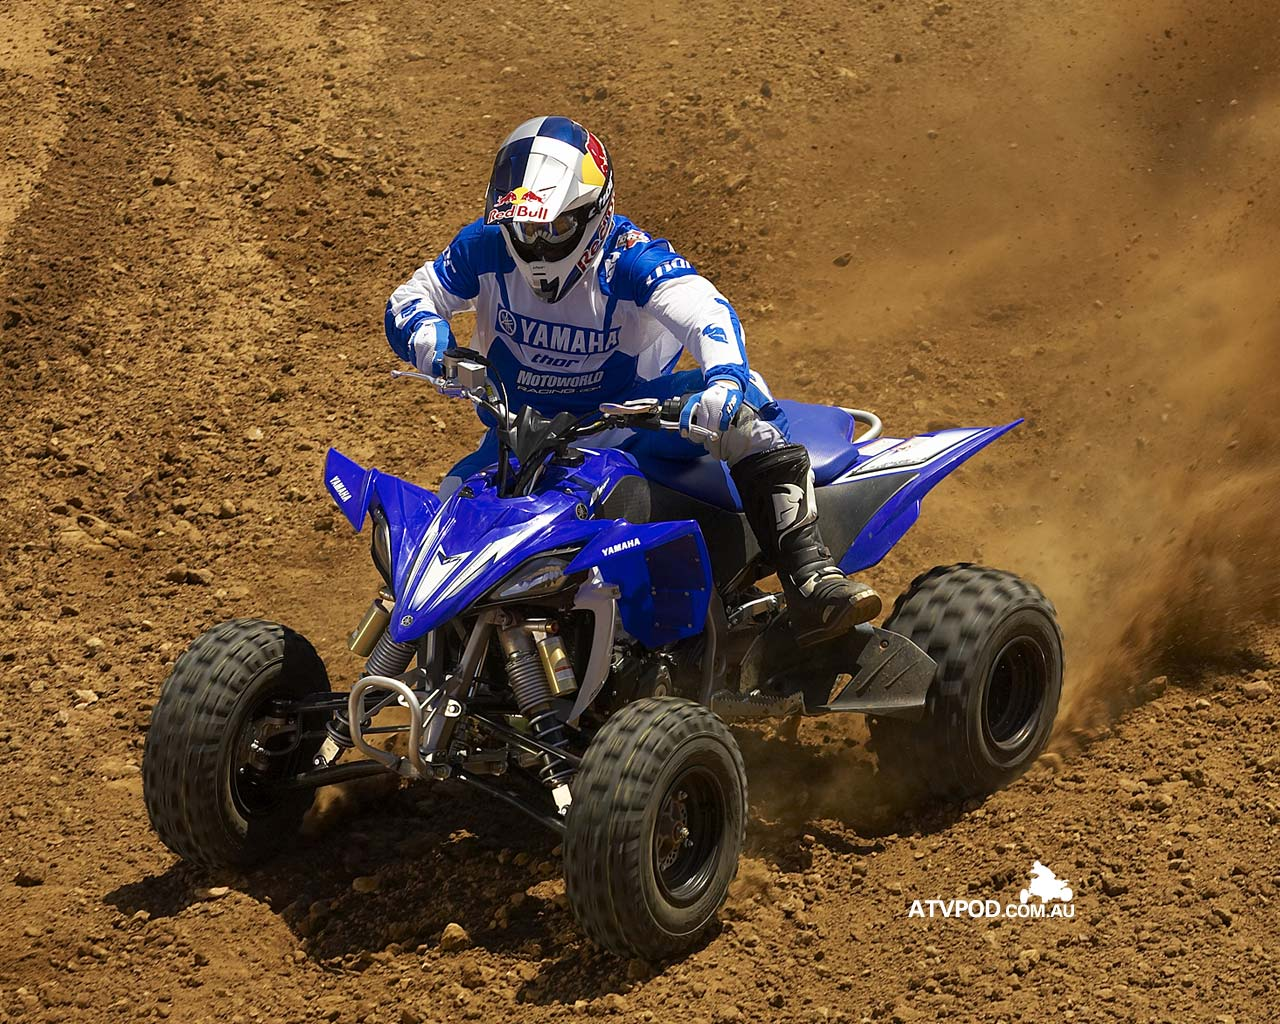 Yamaha Yfz 450 Backgrounds, Compatible - PC, Mobile, Gadgets| 1280x1024 px